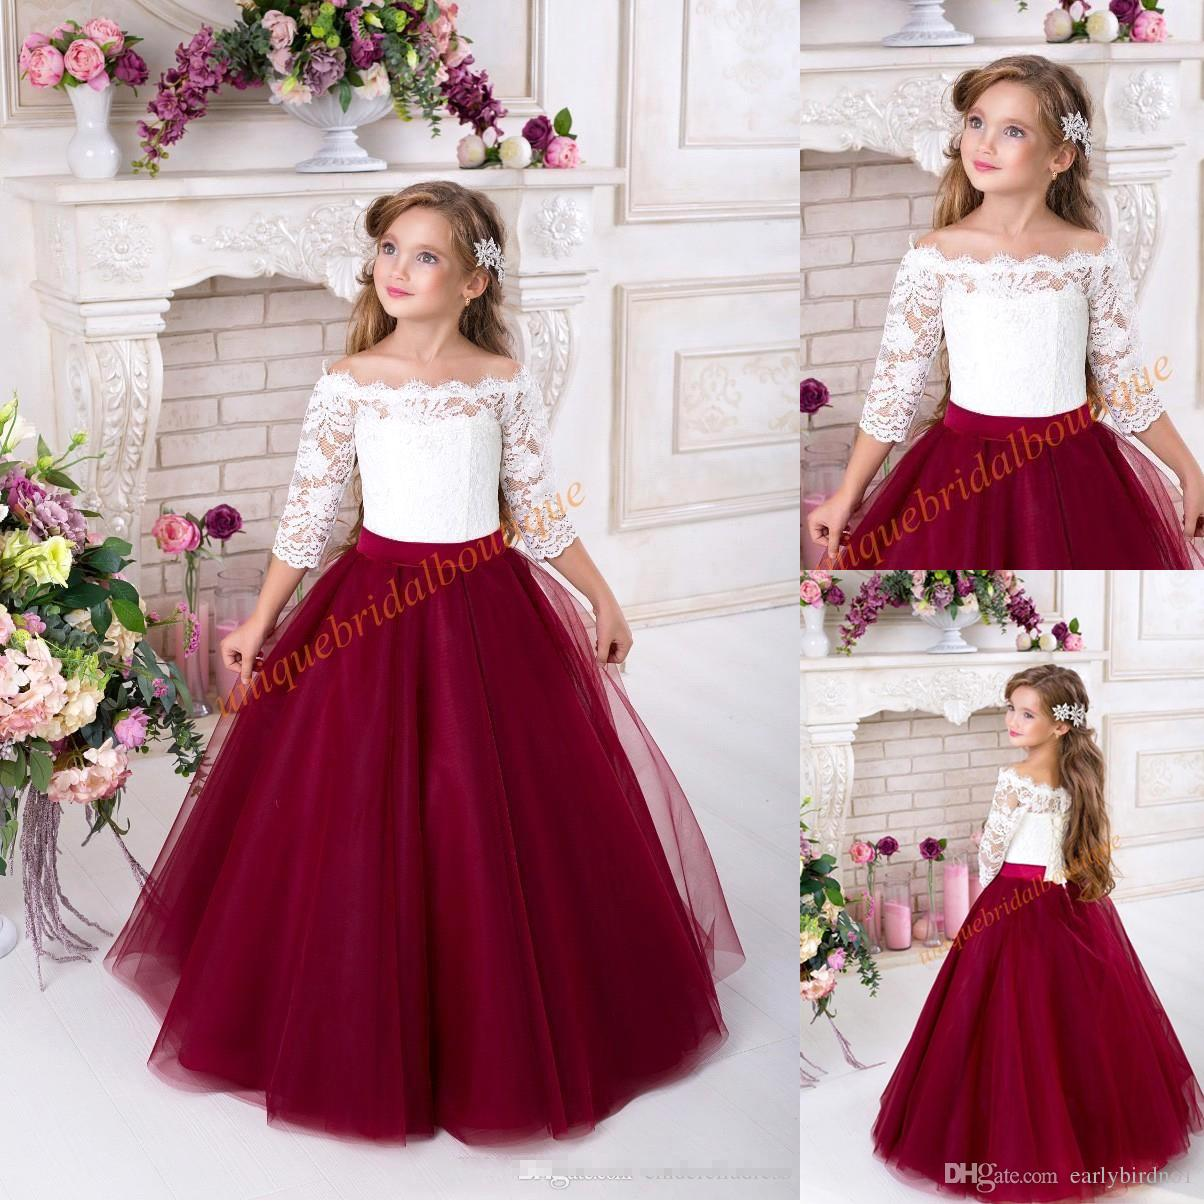 f4ad517a9dc1 Custom Made Off The Shoulder Flower Girls  Dresses With Half Sleeves White  Lace Burgundy Tulle A Line Princess Birthday Party Dress BC0168 Wedding  Dresses ...